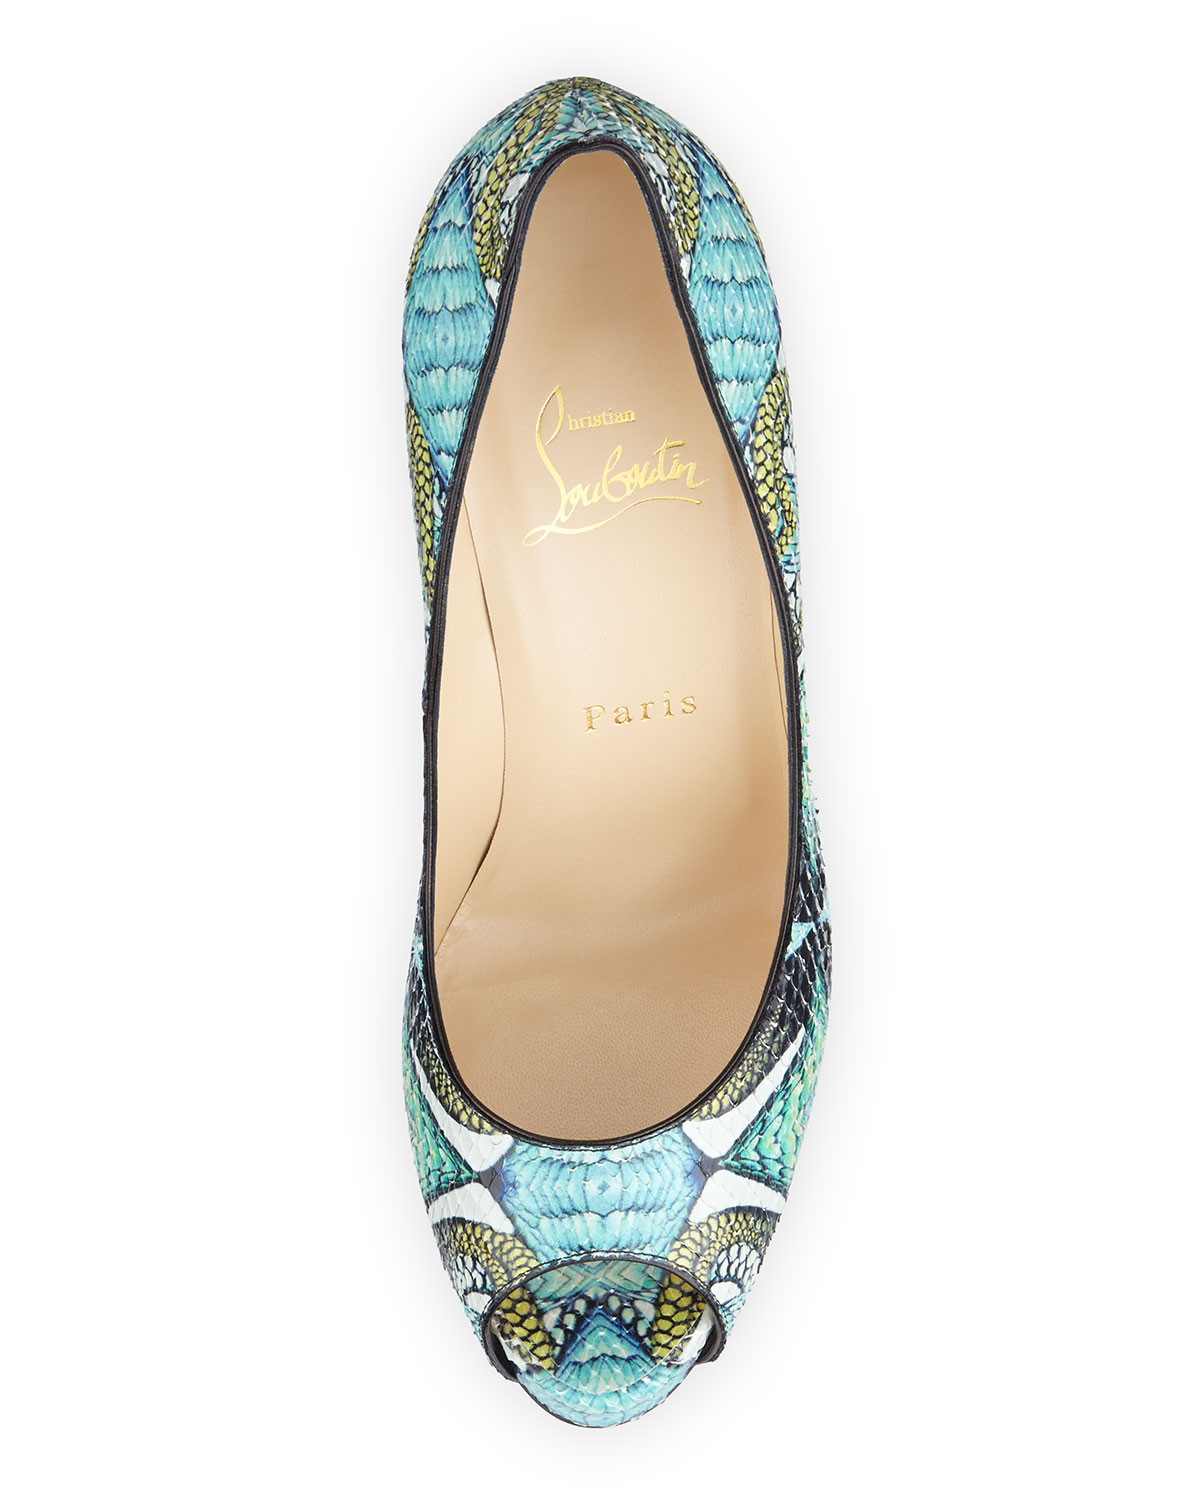 mens replica christian louboutin shoes - Christian louboutin Very Prive Python Pumps in Blue (red)   Lyst